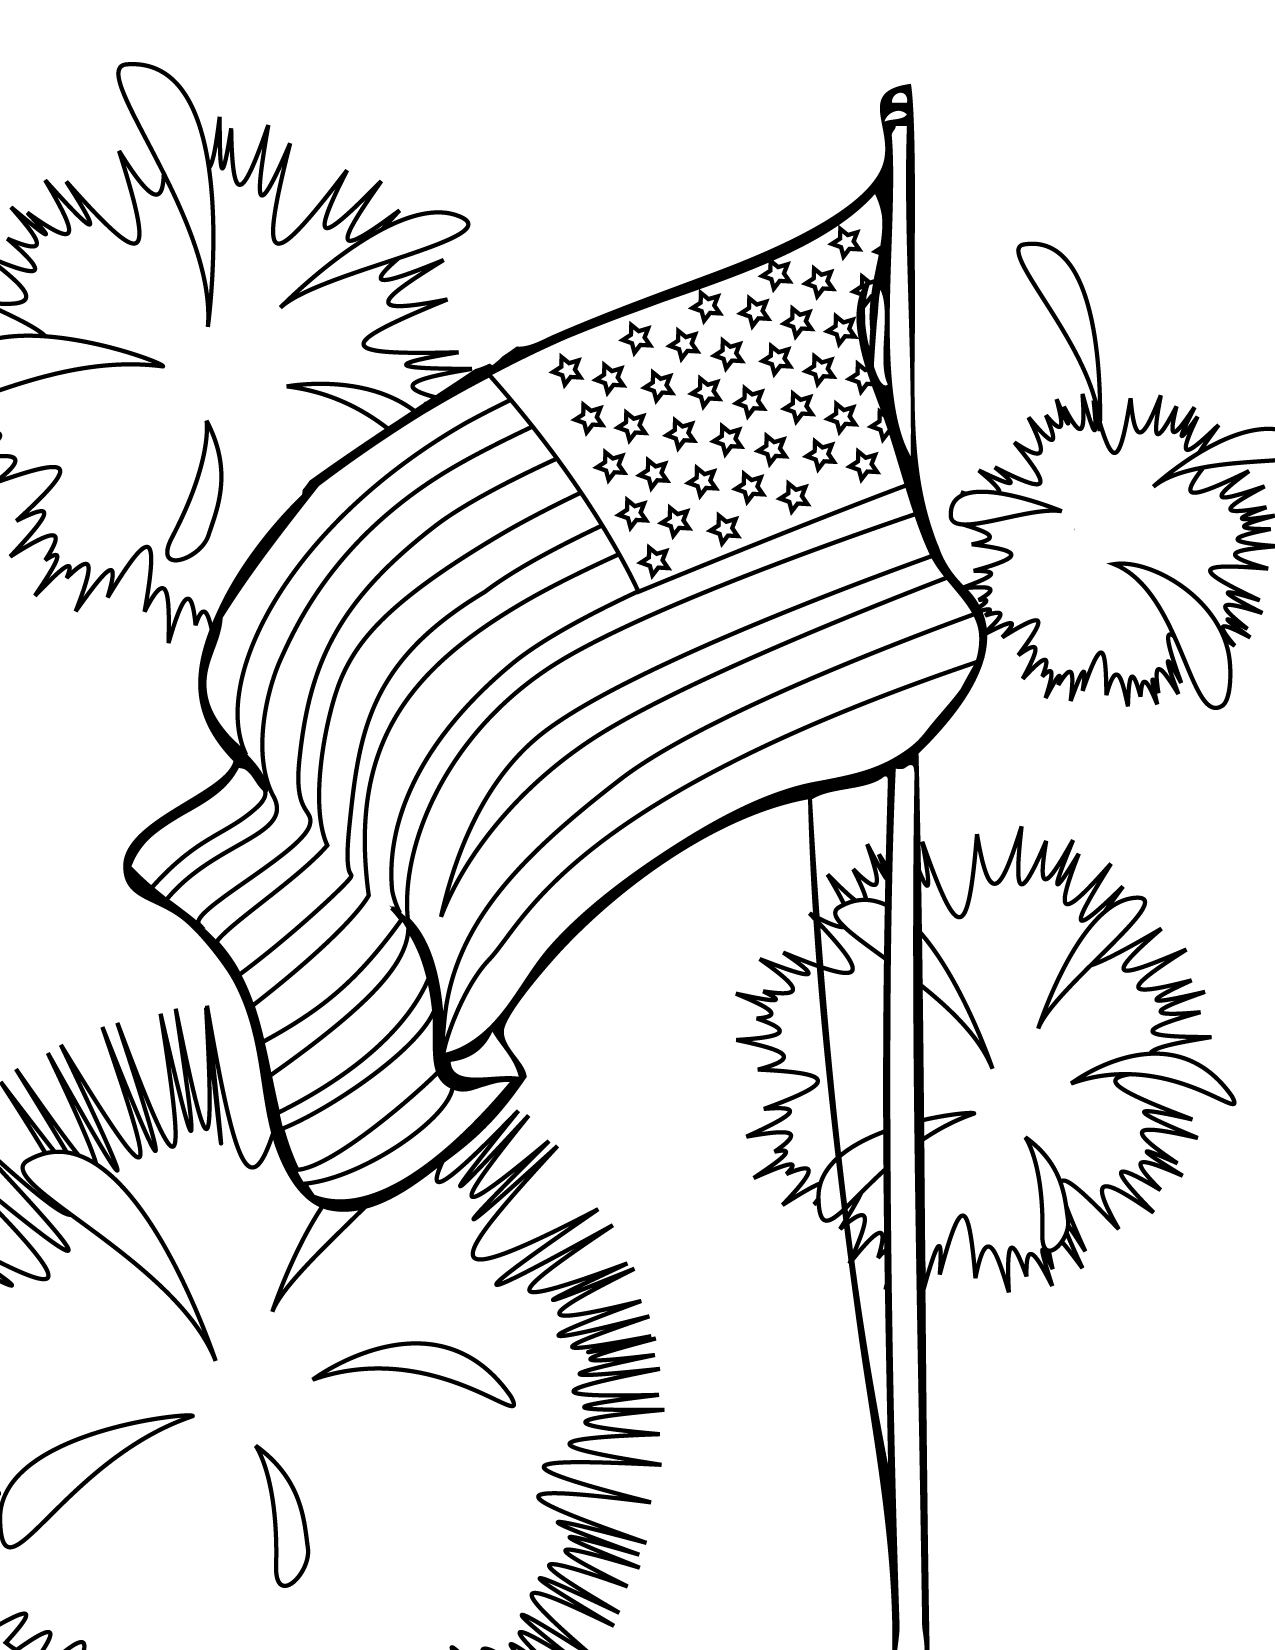 july coloring pictures patriotic 4th of july coloring pages july 4th free coloring pictures july